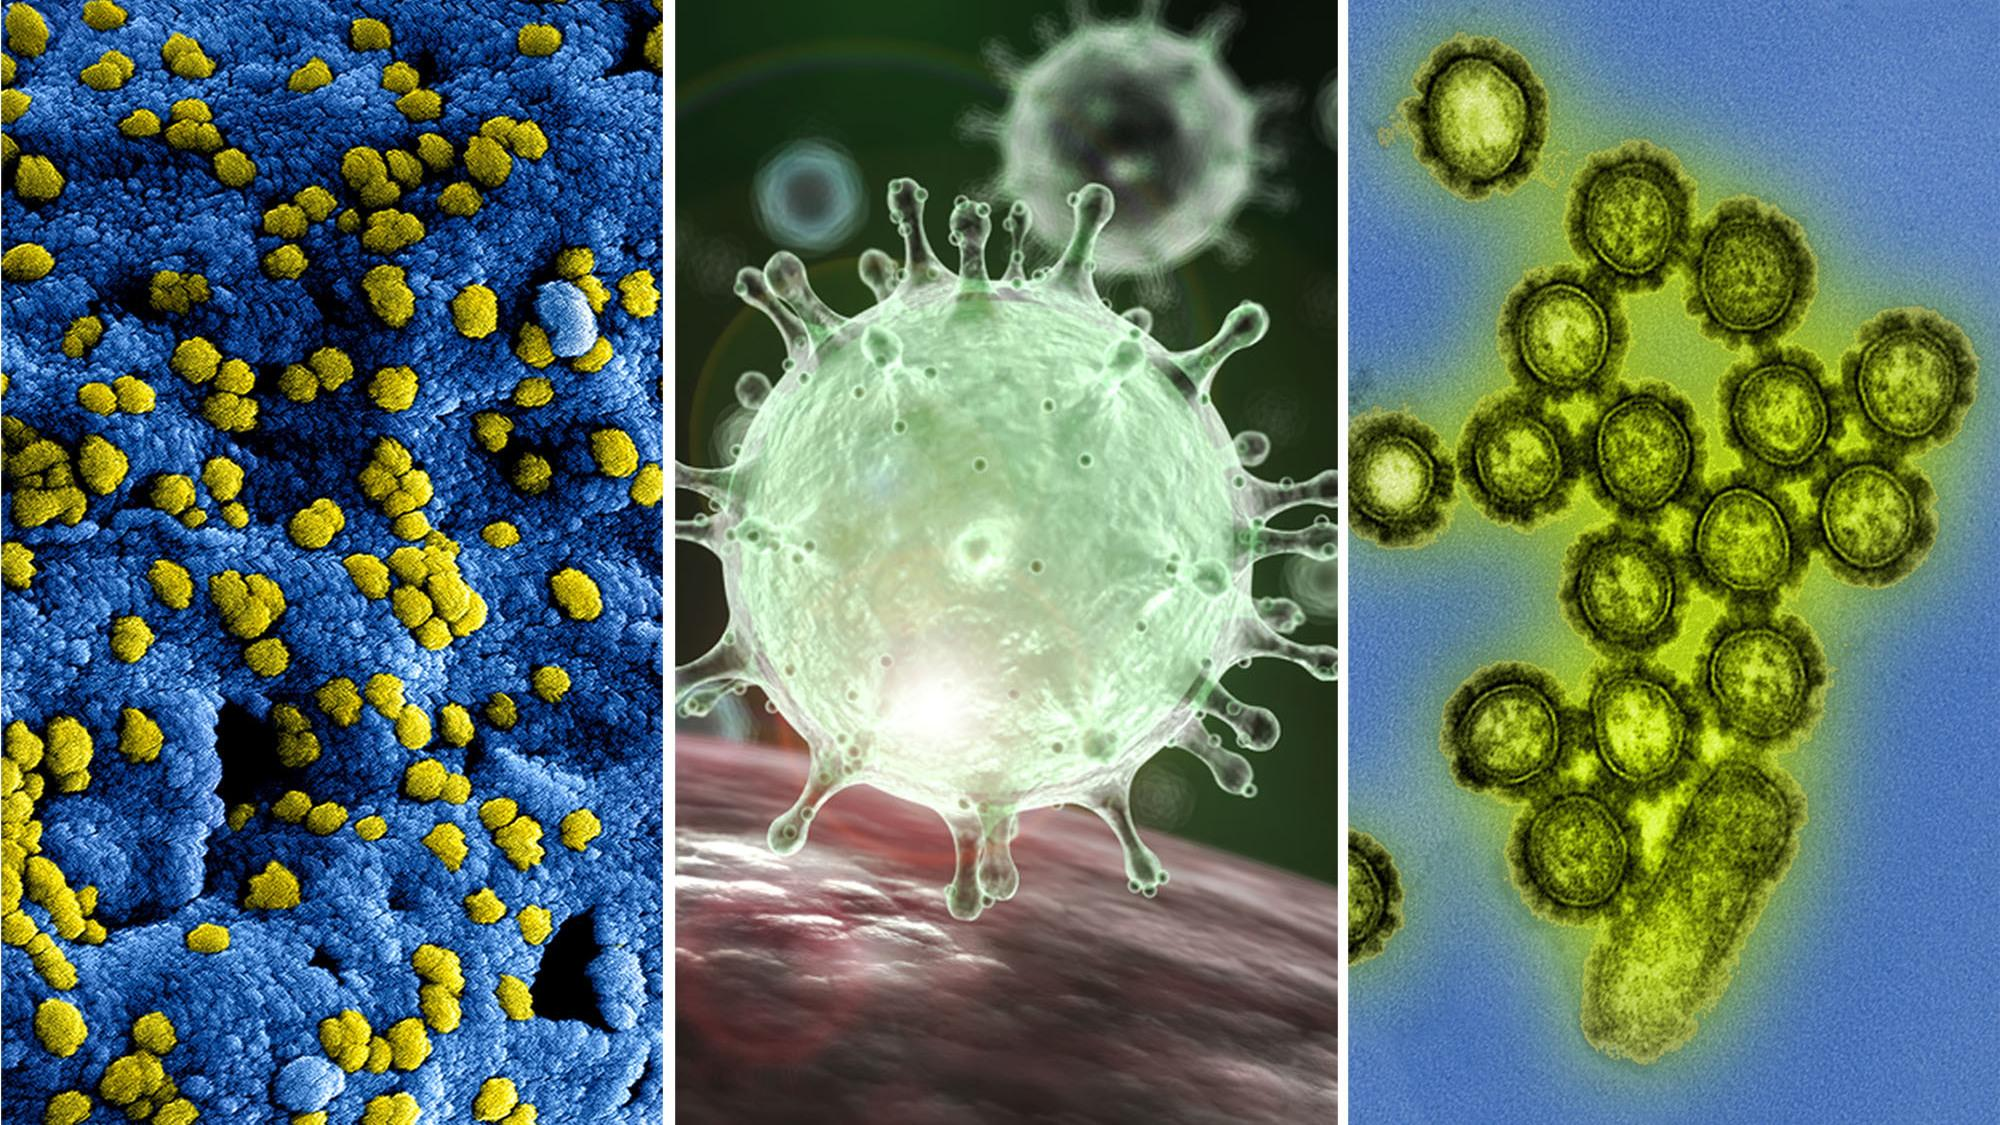 a study of influenza virus The purpose of this study is to describe the immunogenicity of the prototype quadrivalent influenza vaccine (qiv) compared with the 2009-2010 trivalent.